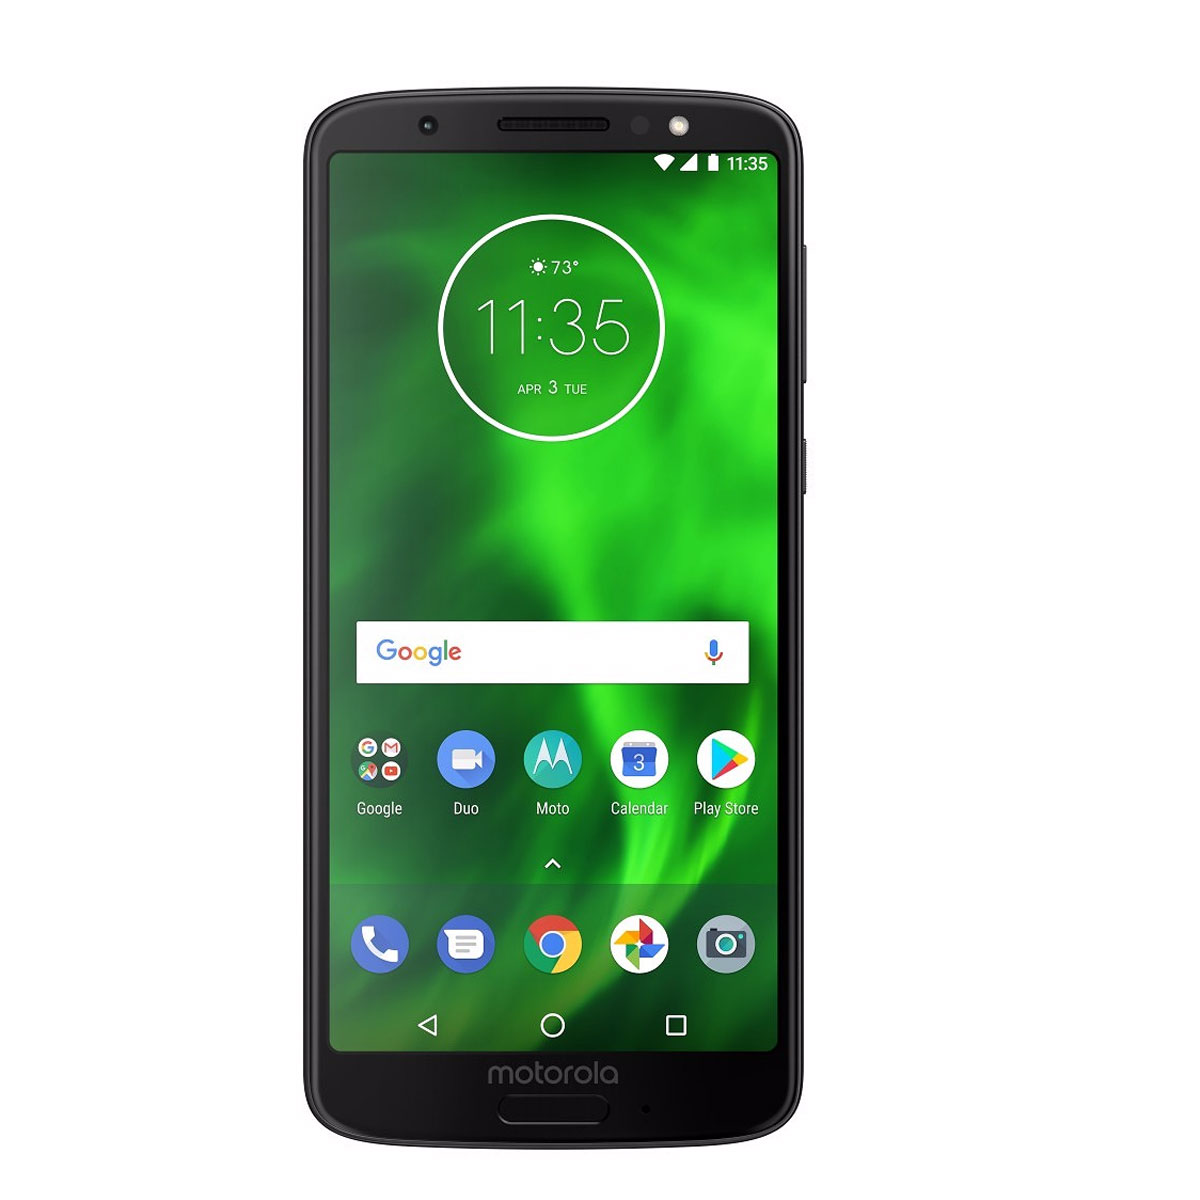 "New Motorola Moto G6 32GB XT1925-2 Dual SIM Factory Unlocked 4G LTE 5.7"" IPS LCD Smartphone Dual 12MP + 5MP Smartphone - Deep Indigo - International Version"